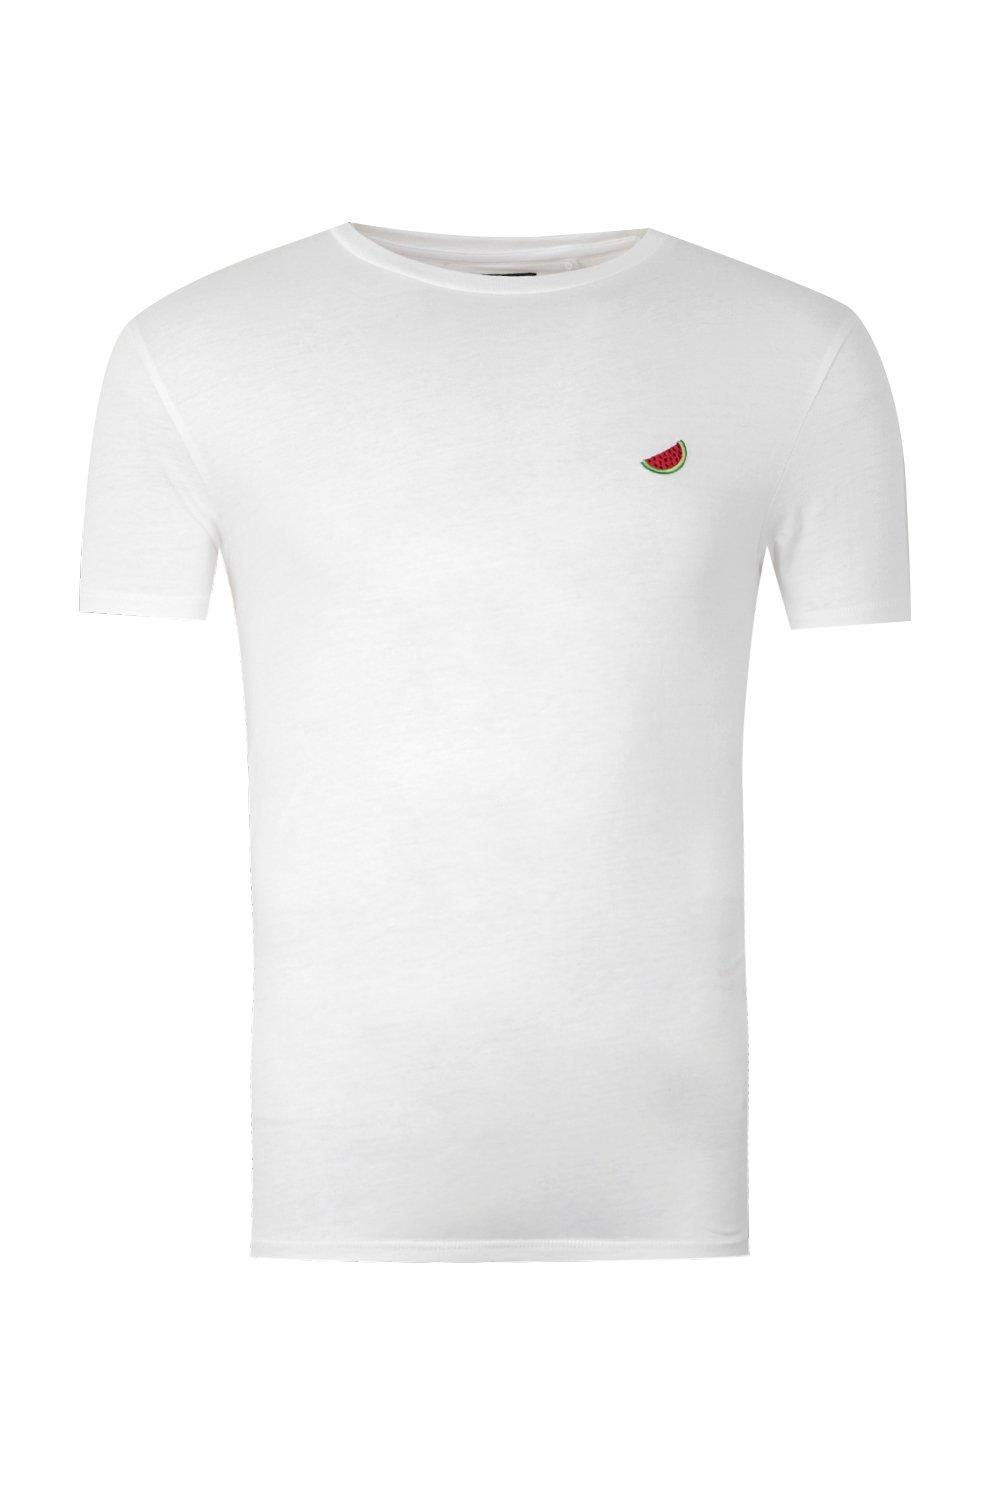 boohooMAN white Melon Embroidered T-Shirt